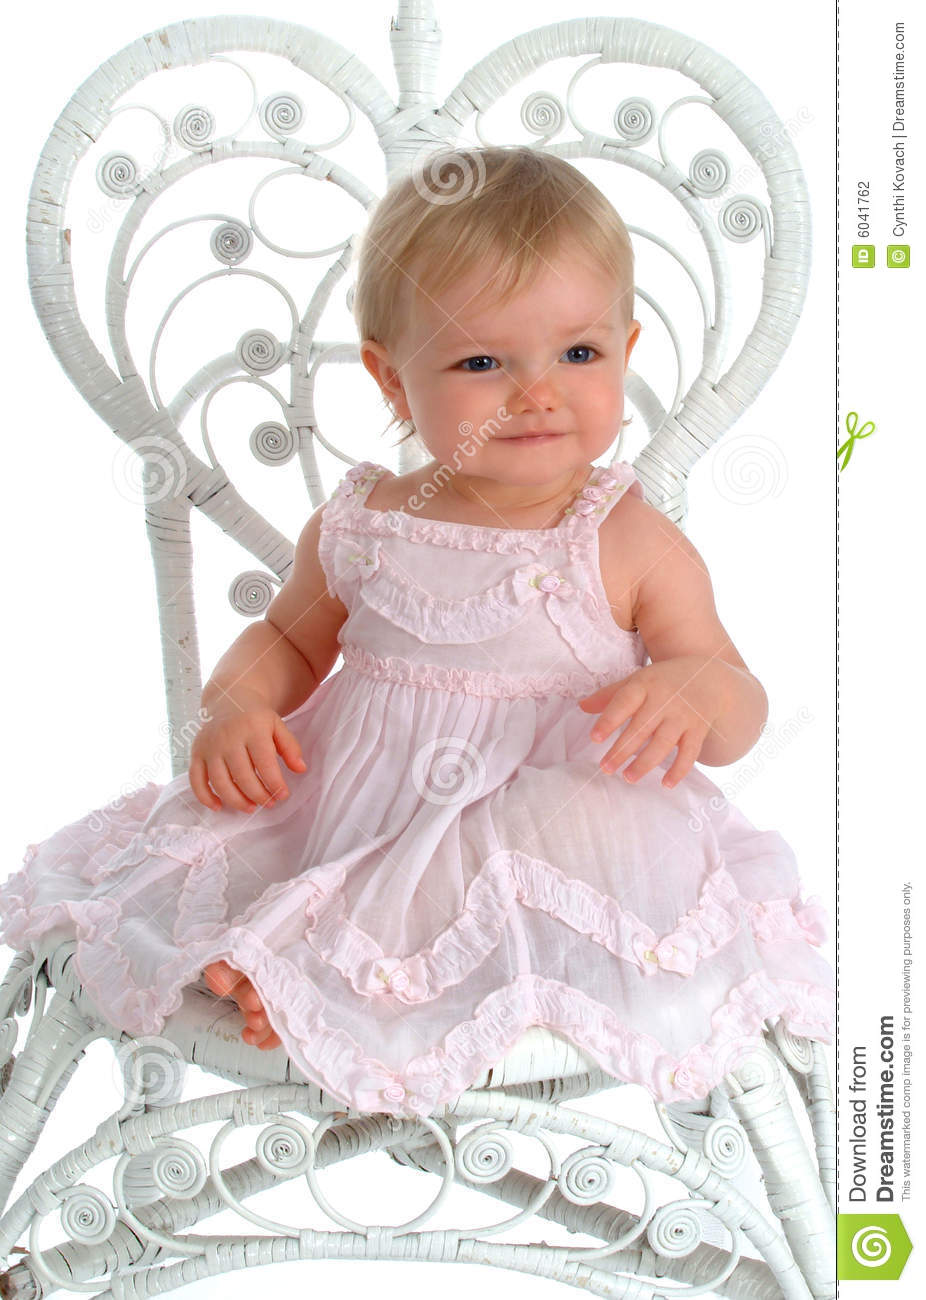 Baby in wicker chair stock photography image 6041762 for Toddler sitting chair